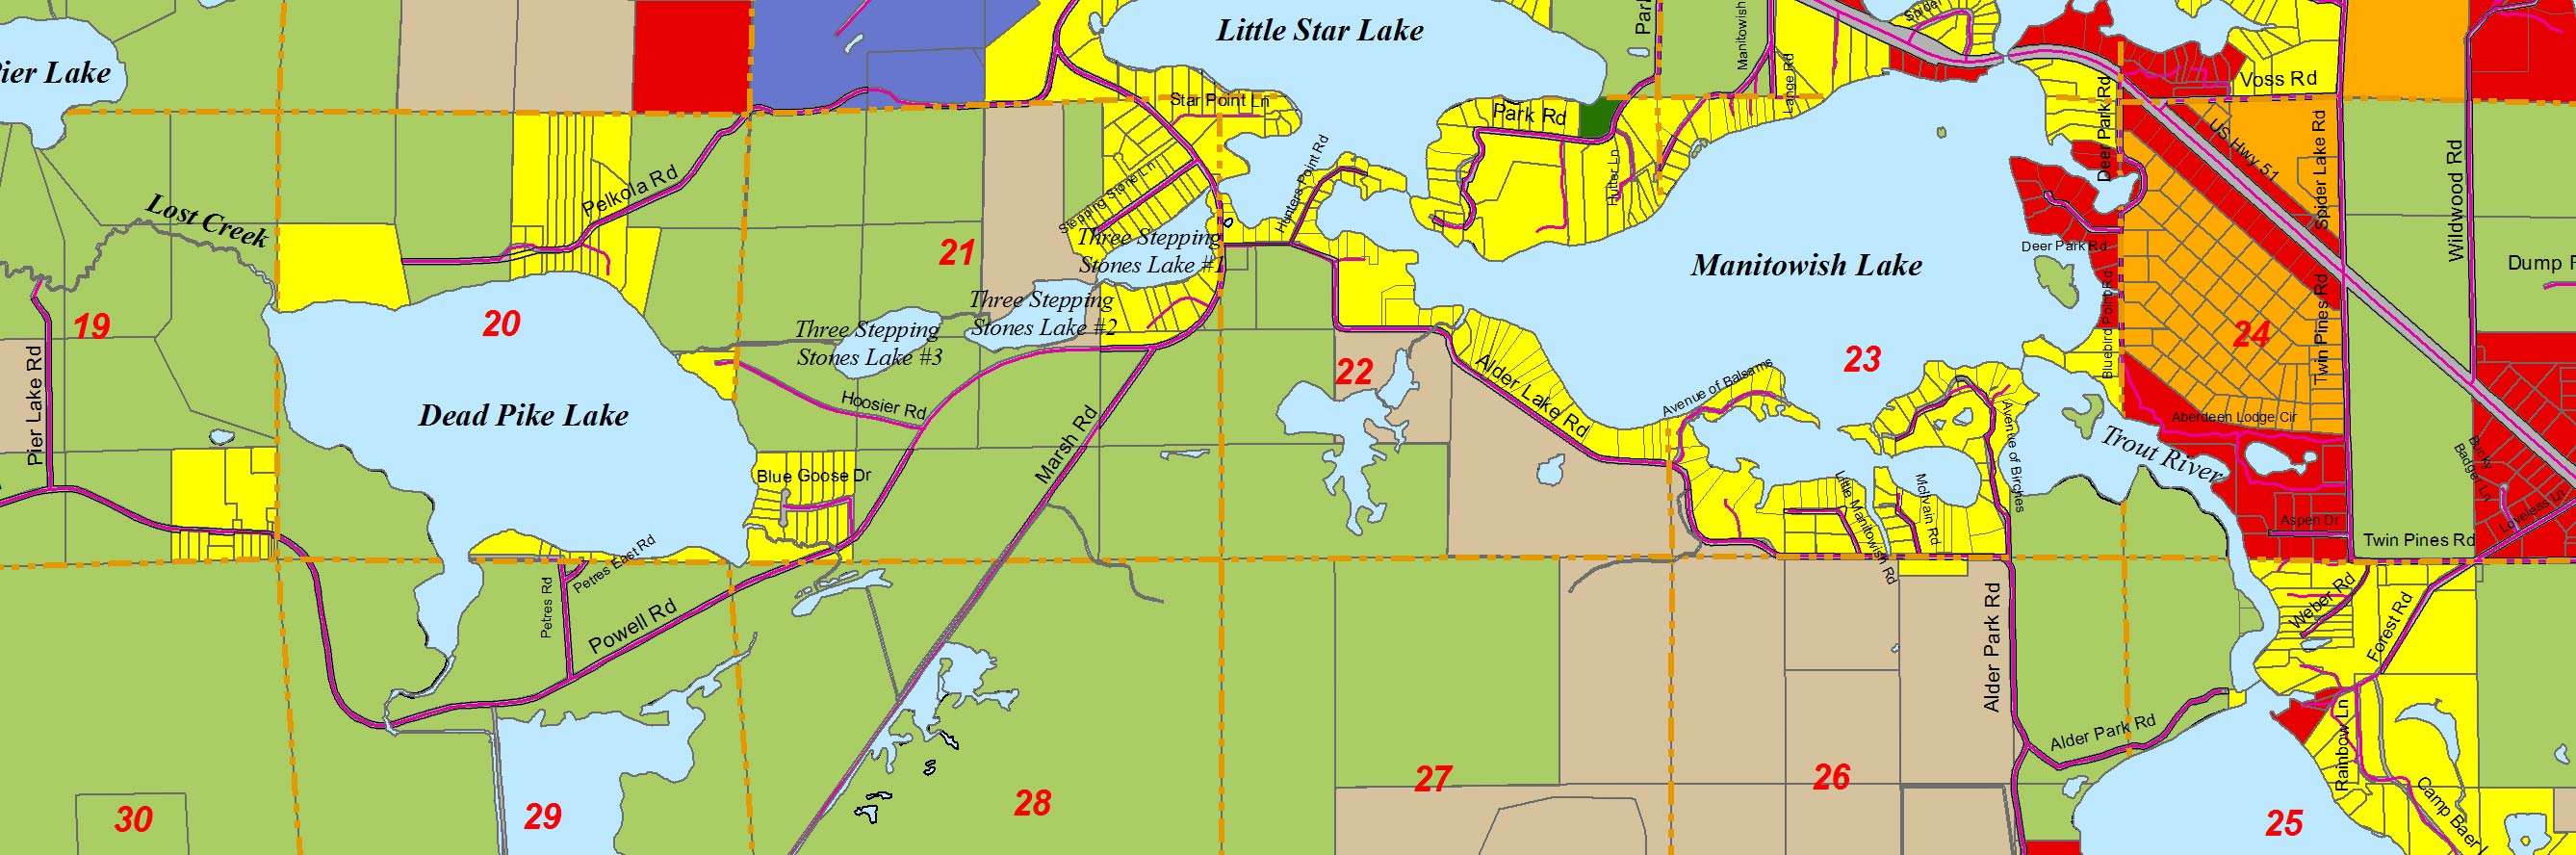 Comprehensive Plan for Land Development and Community Planning in Manitowish Waters, WI